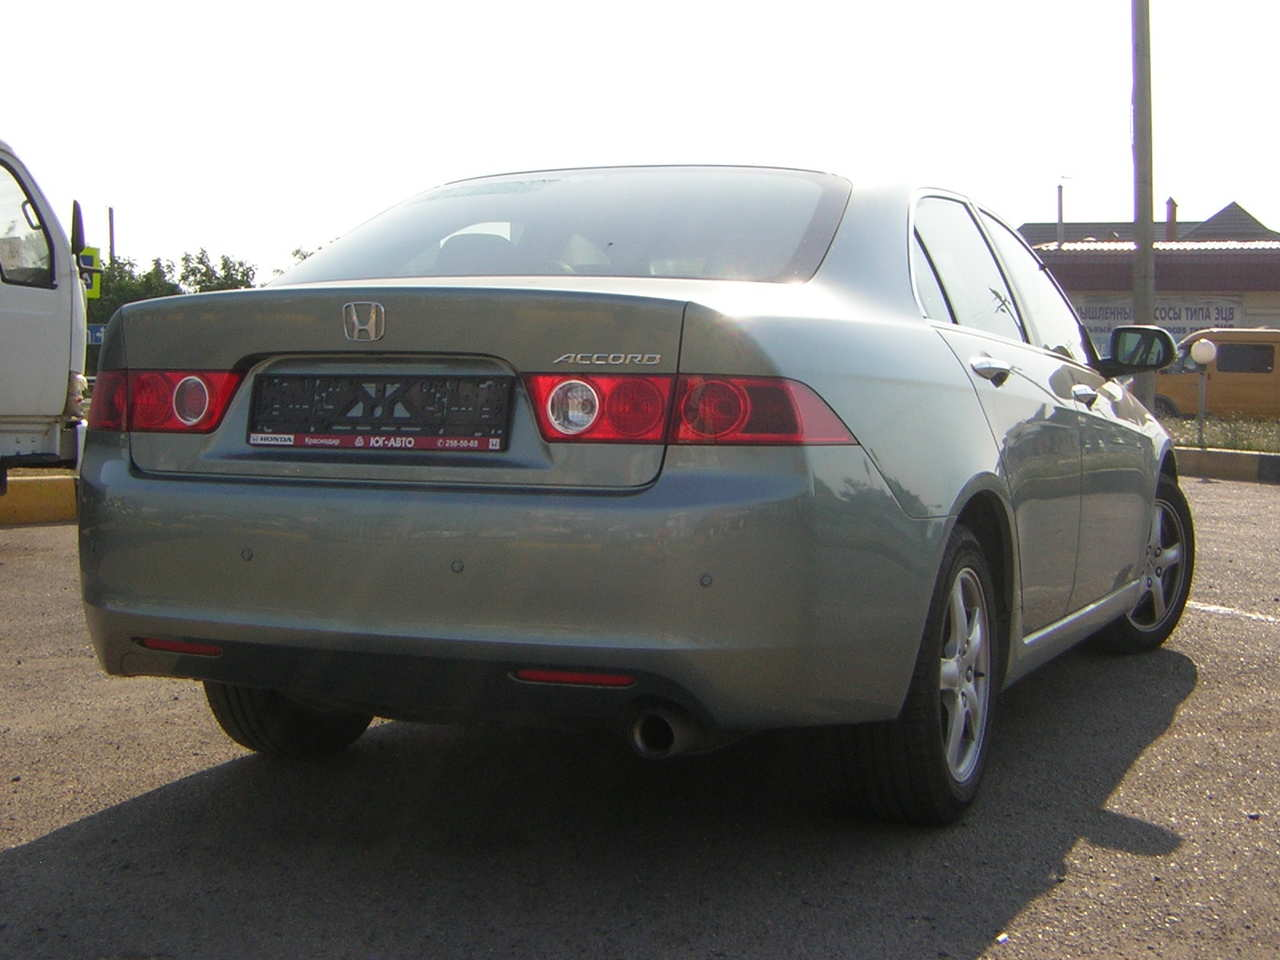 2006 honda accord coupe photos 2 0 gasoline ff automatic for sale. Black Bedroom Furniture Sets. Home Design Ideas